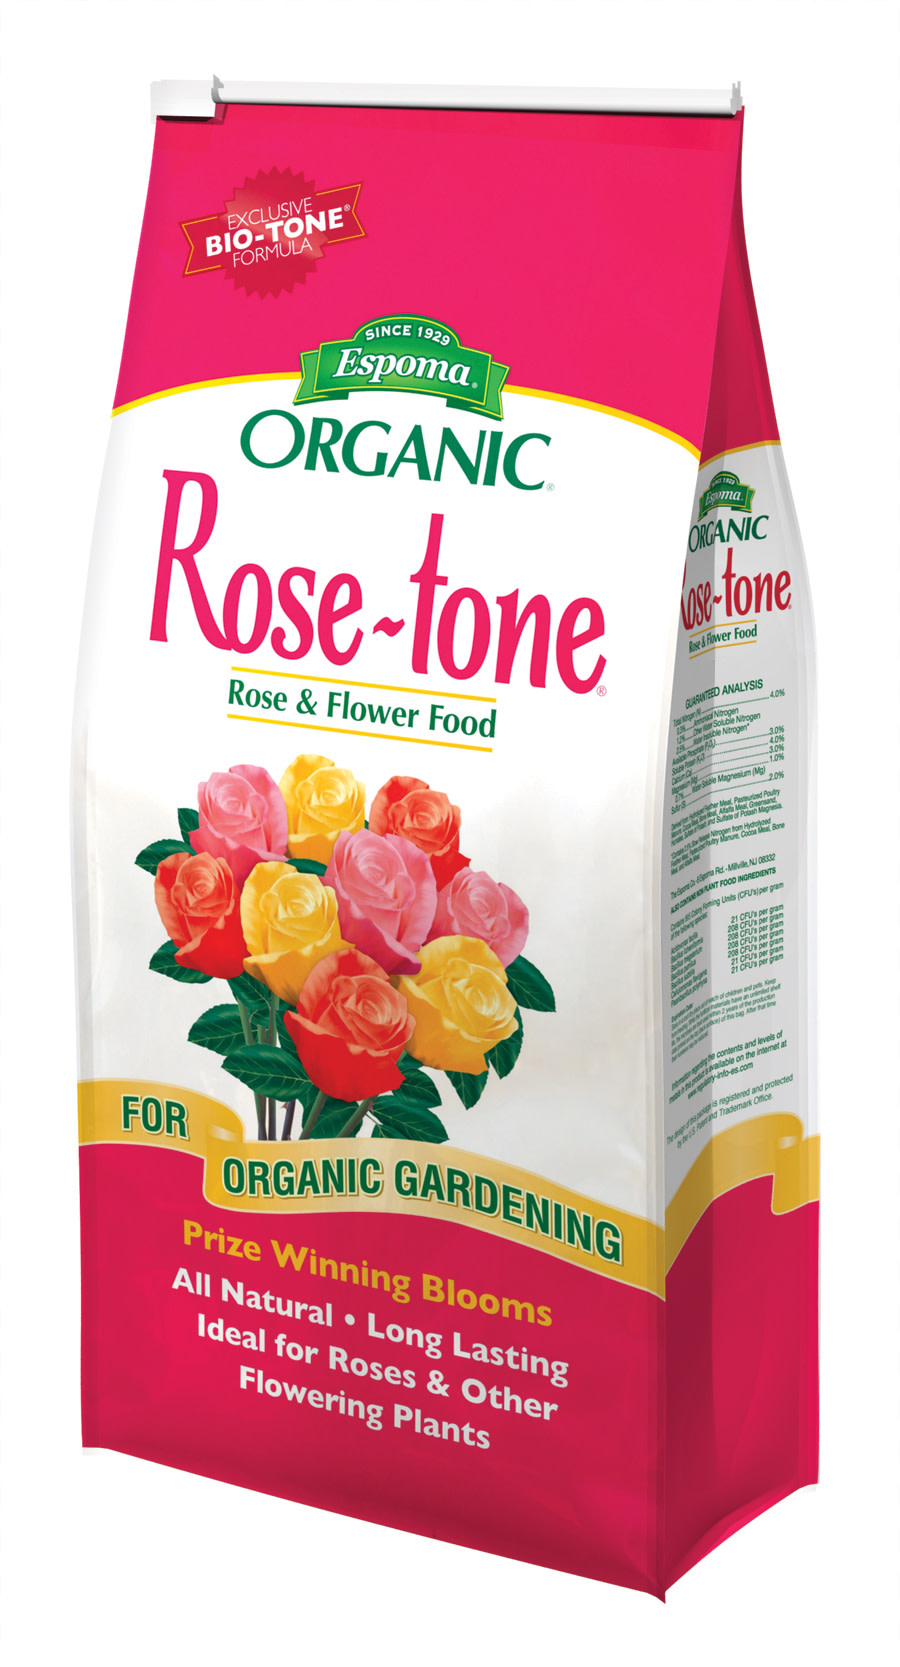 Espoma Organic Rose-tone Rose & Flower Food 4-3-2